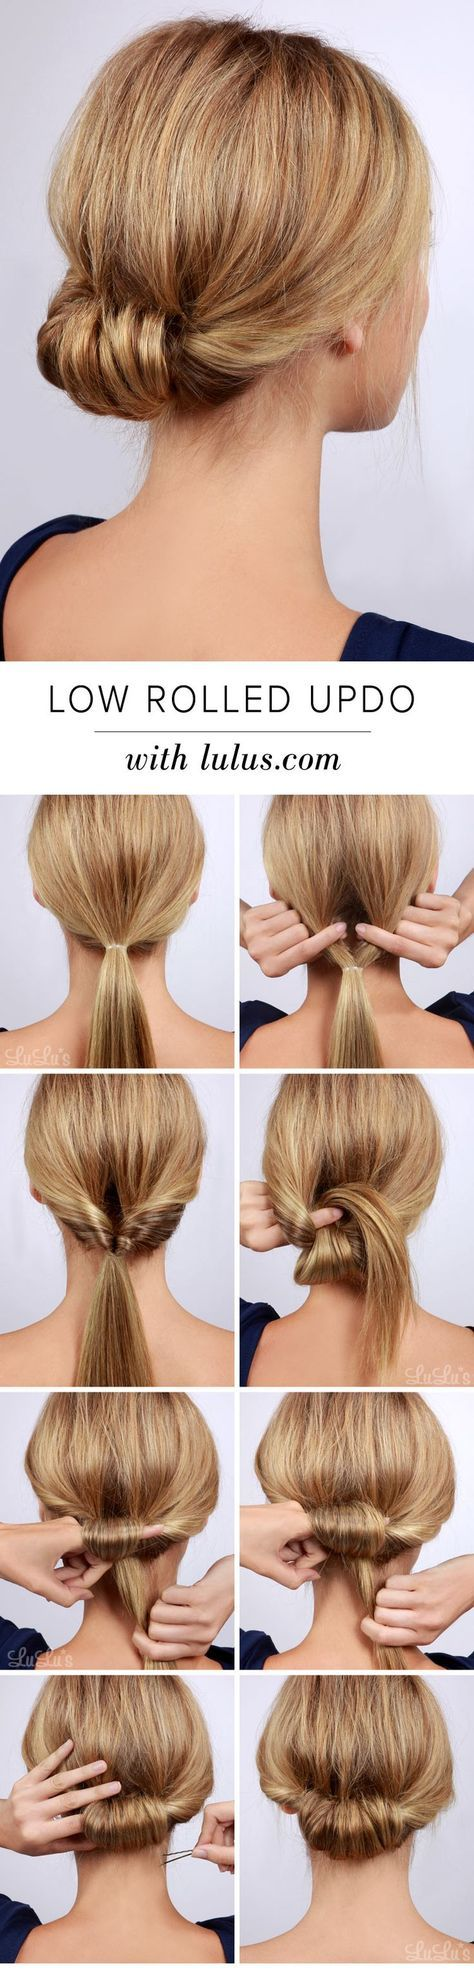 Lulus How-To: Low Rolled Updo Hair Tutorial